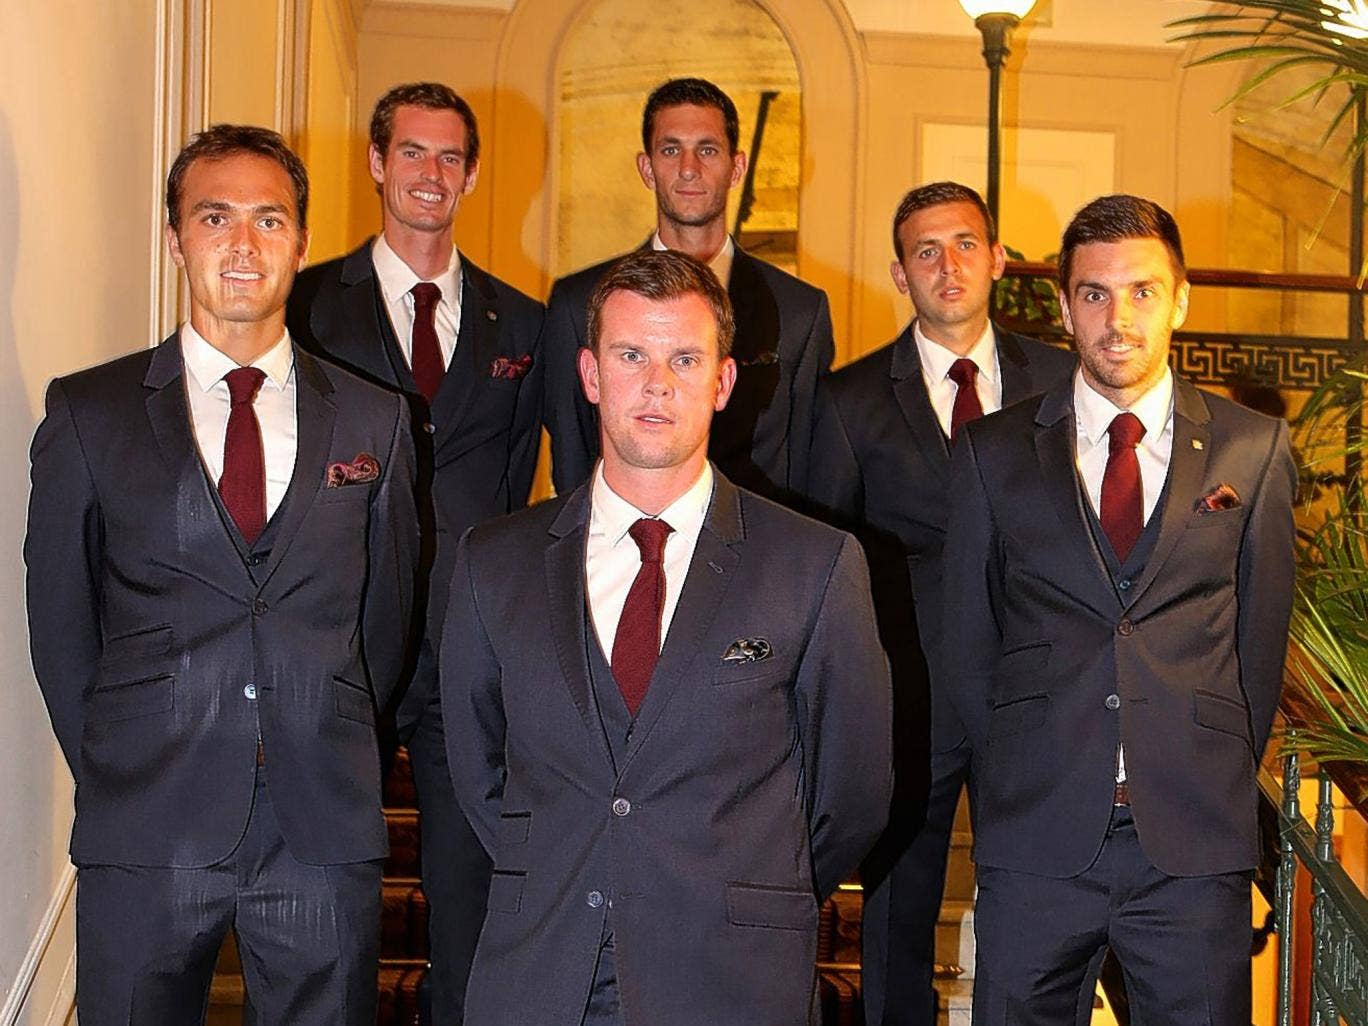 Great Britain's Davis Cup squad in Naples ahead of their tie with Italy, clockwise from front left: Ross Hutchins Andy Murray, James Ward, Dan Evans, Colin Fleming and team captain Leon Smith